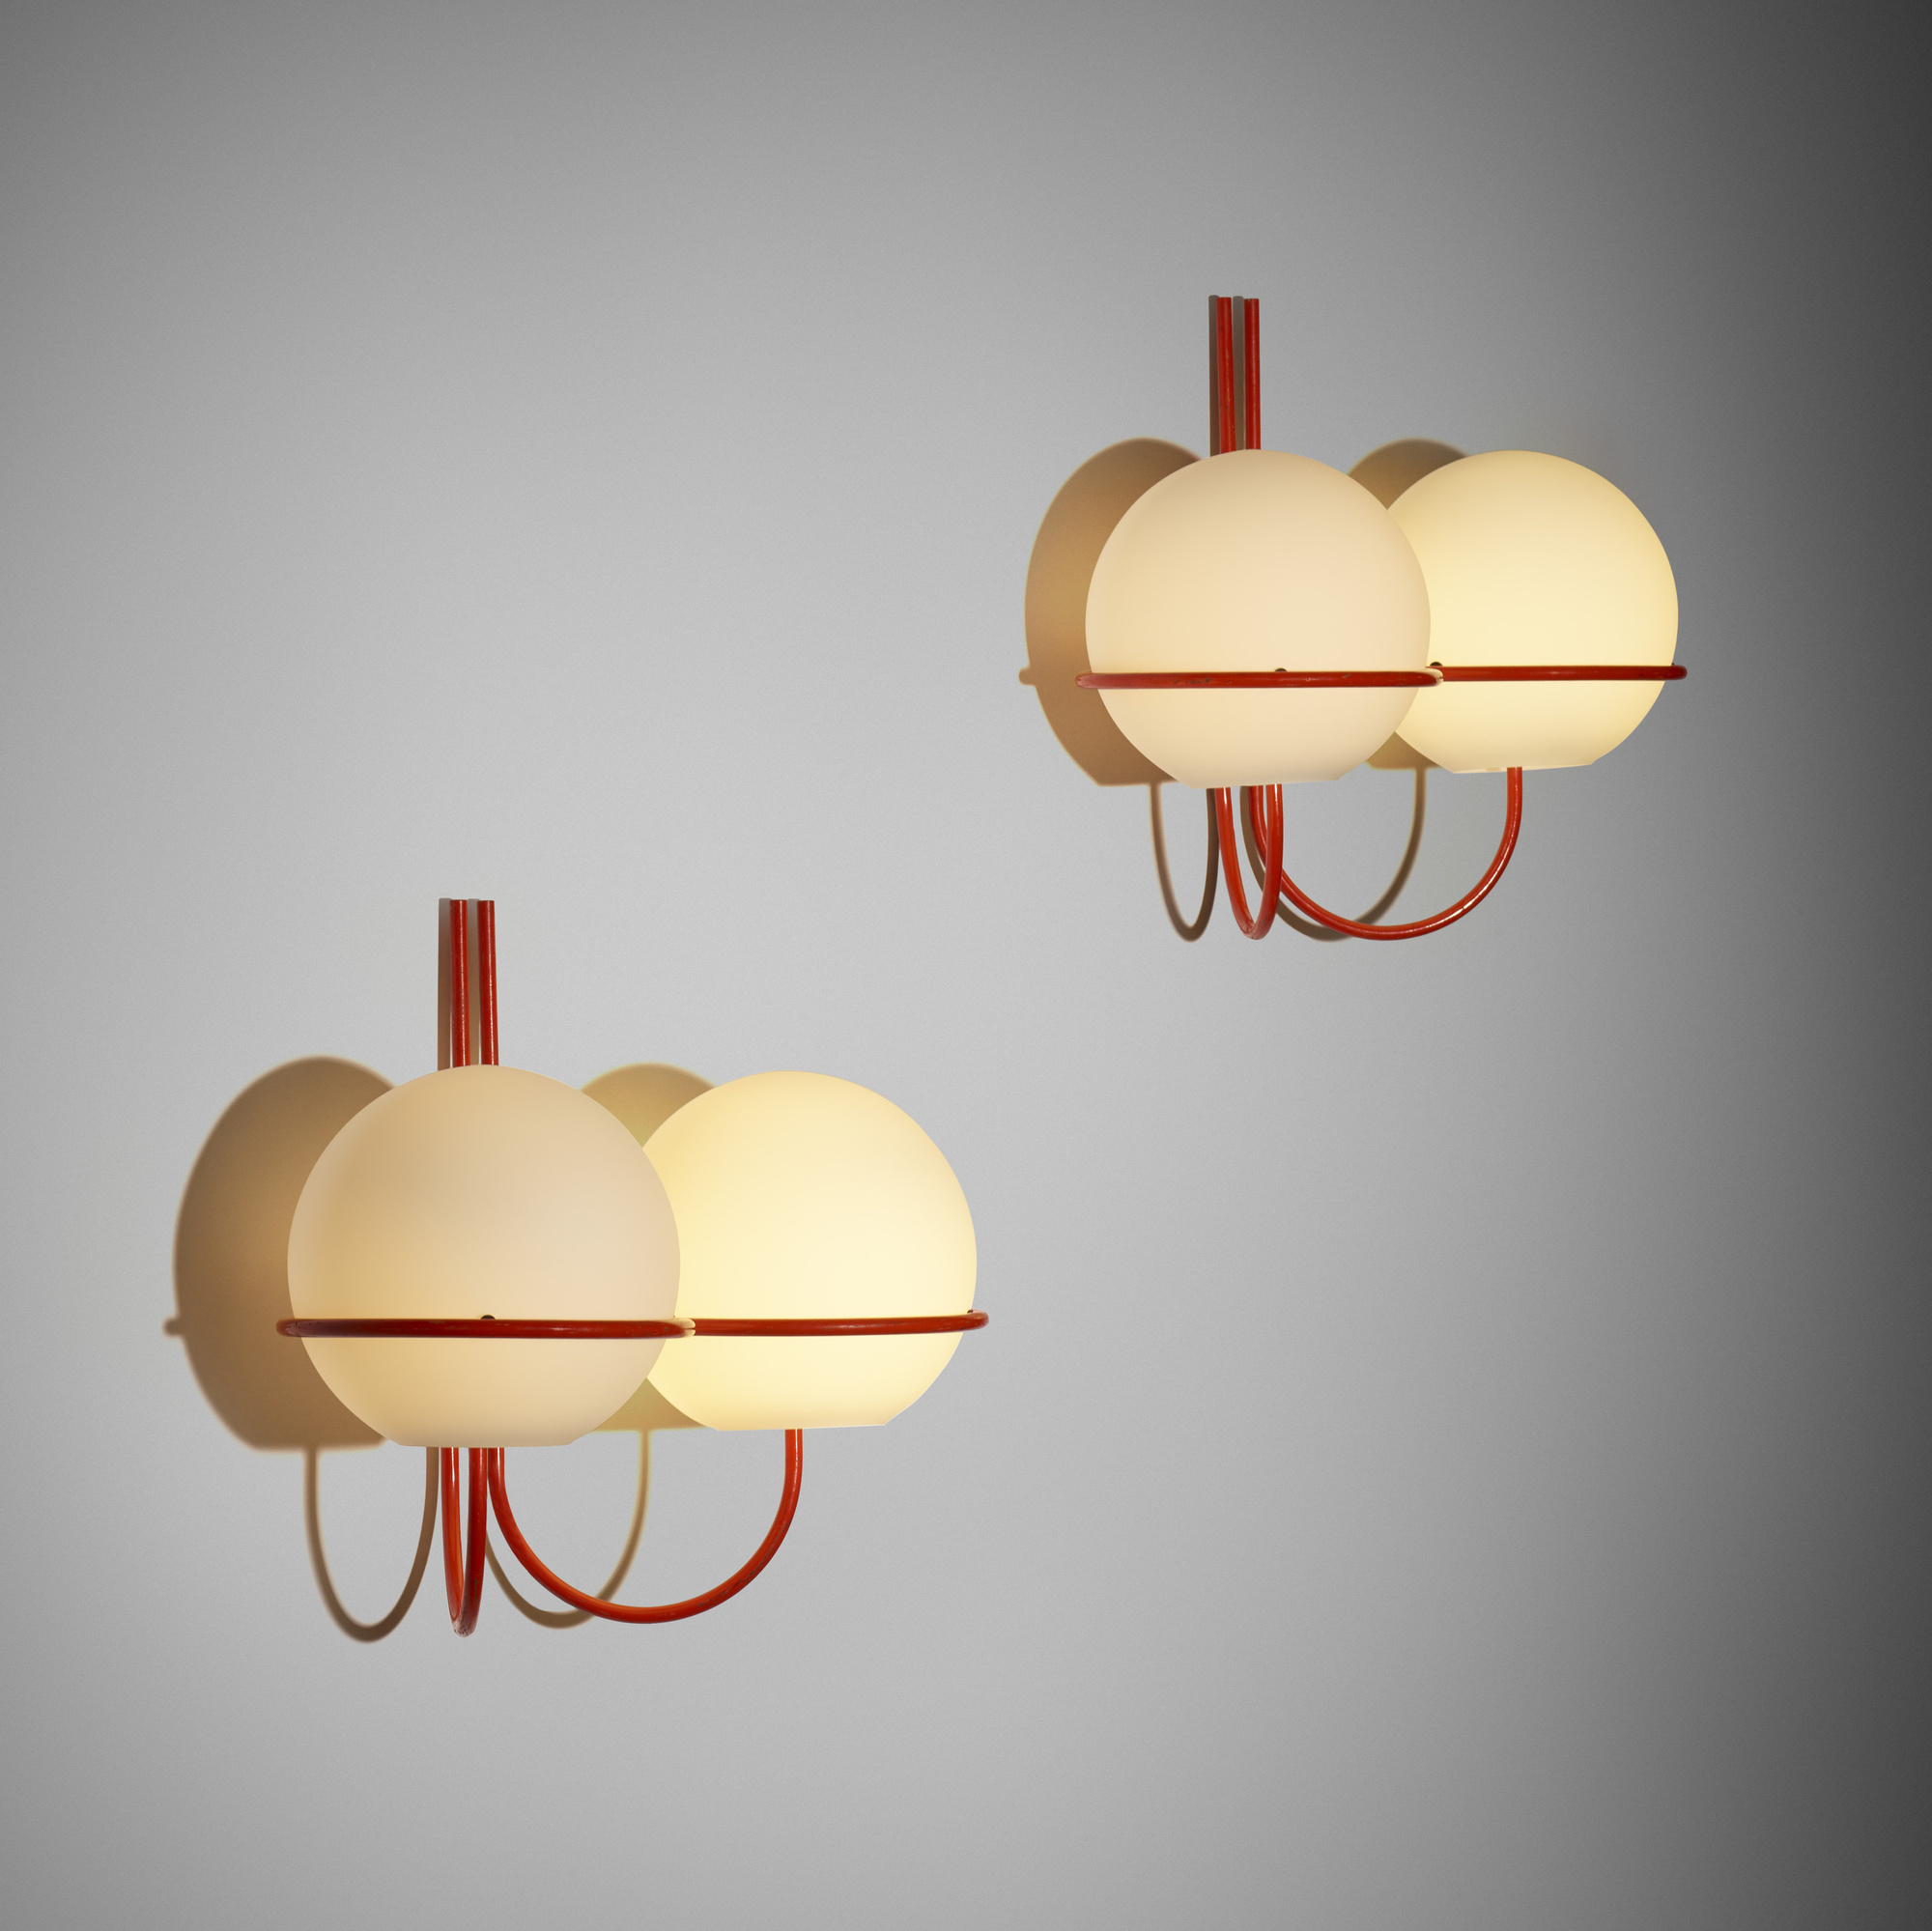 217: Ico and Luisa Parisi / wall lamps, pair (1 of 2)